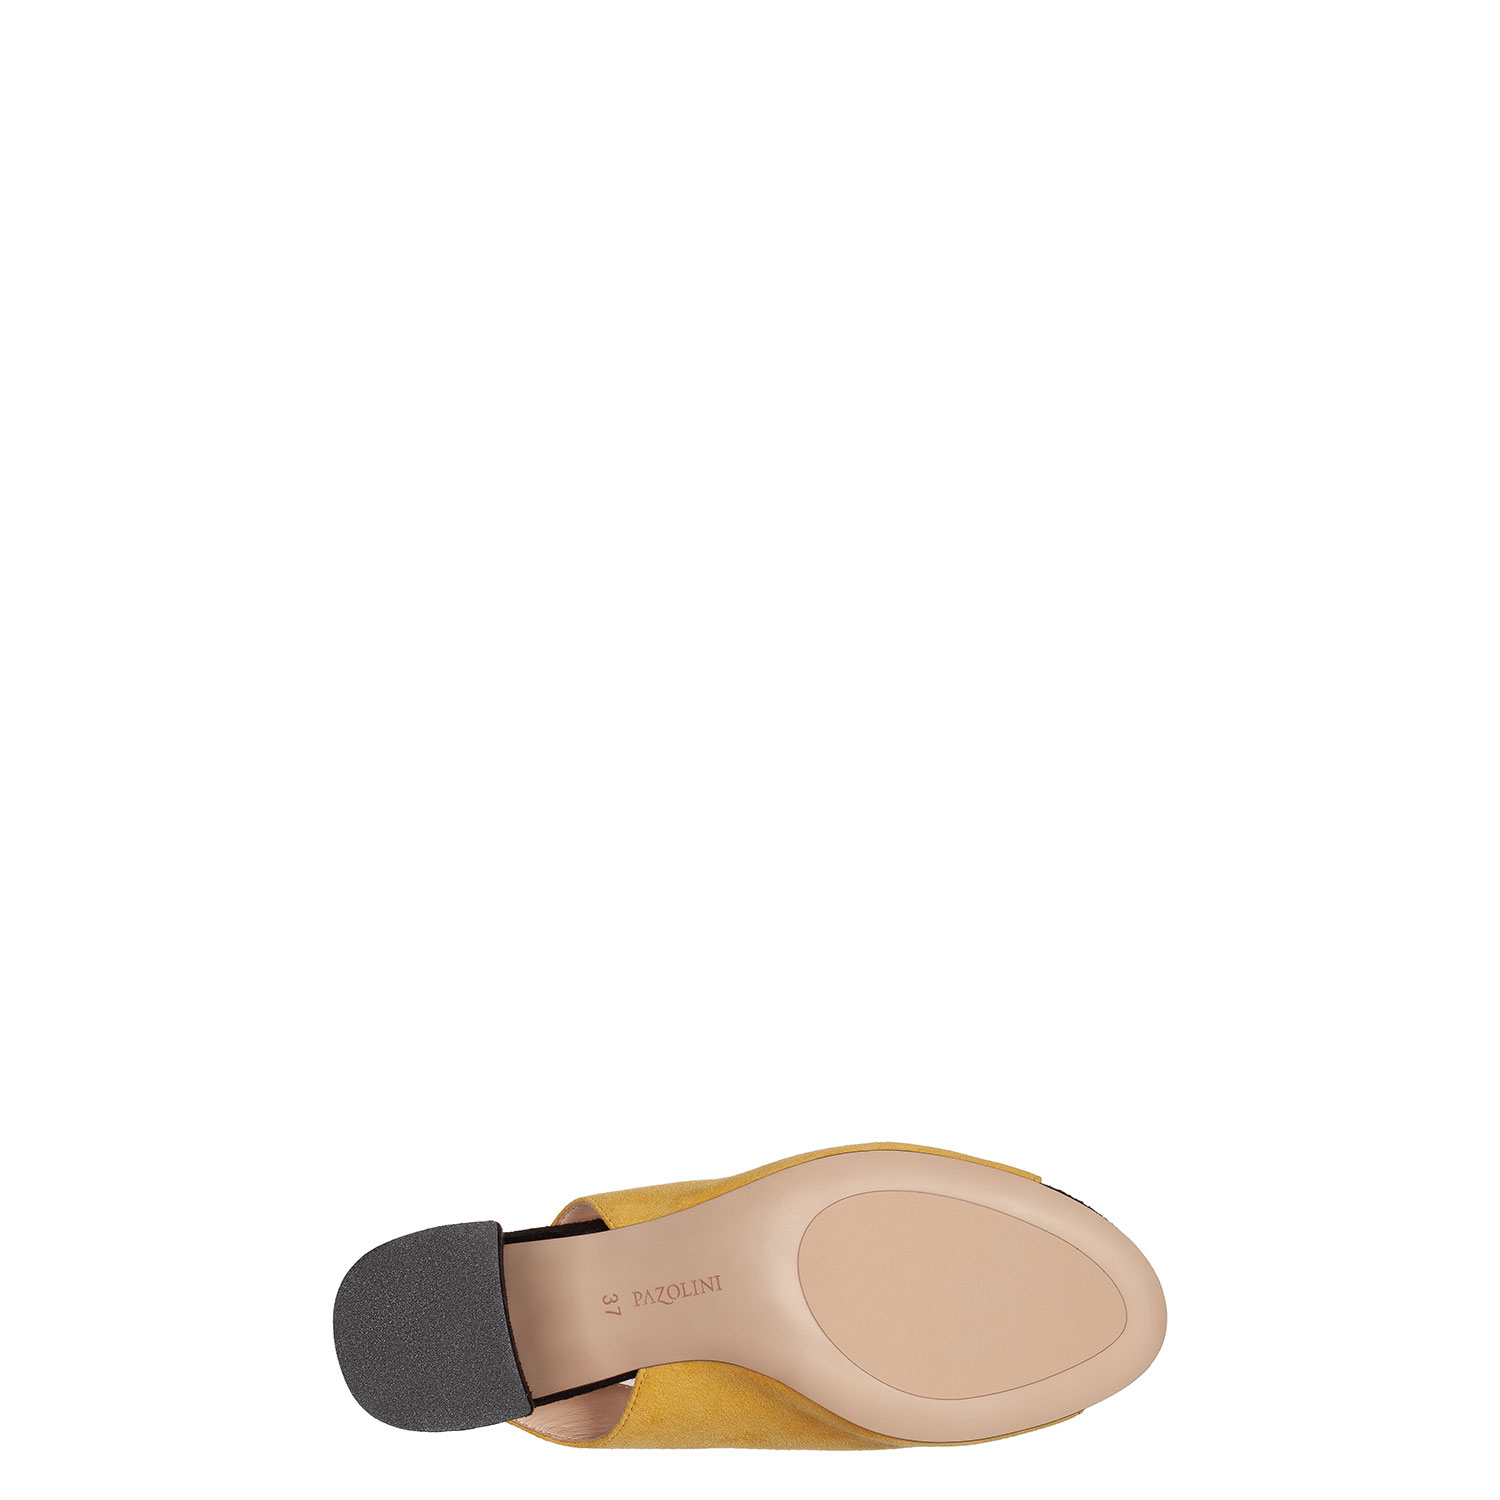 Women's sandals PAZOLINI FG-SHY10-13